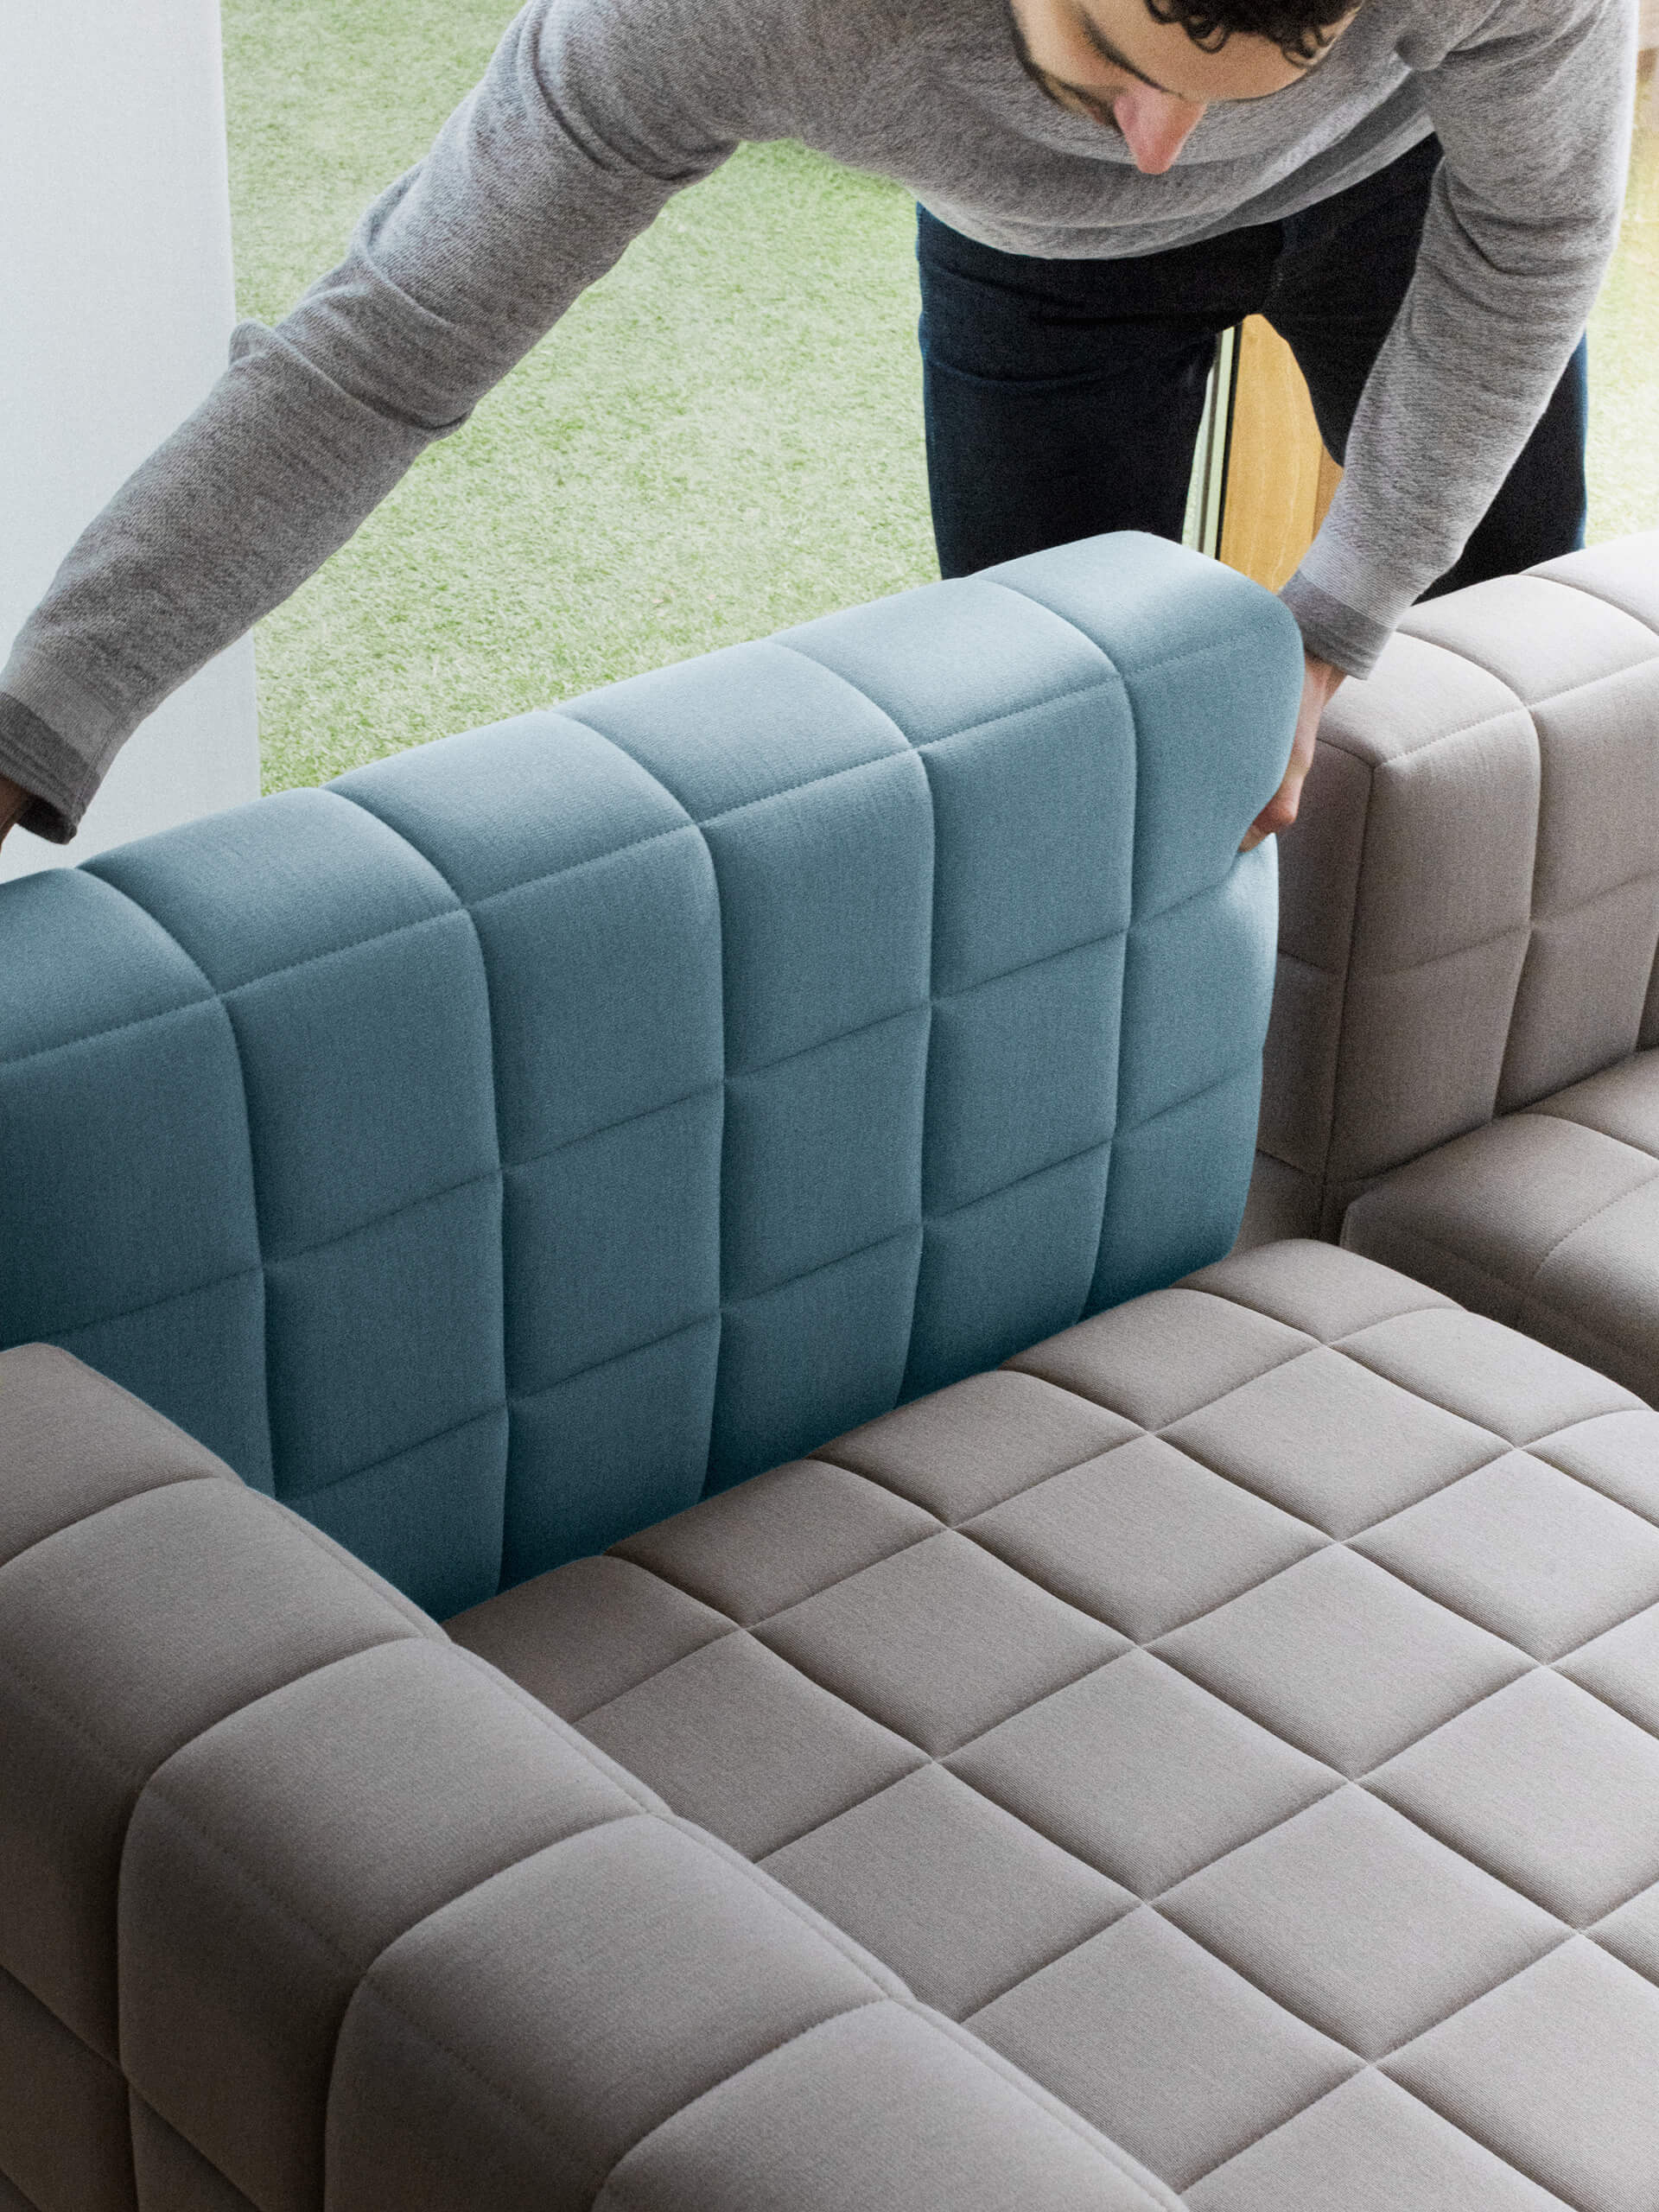 The Voxel Sofa's damaged pieces can be easily and sustainably repaired or swapped | Voxel Sofa by BIG for Common Seating | STIRworld